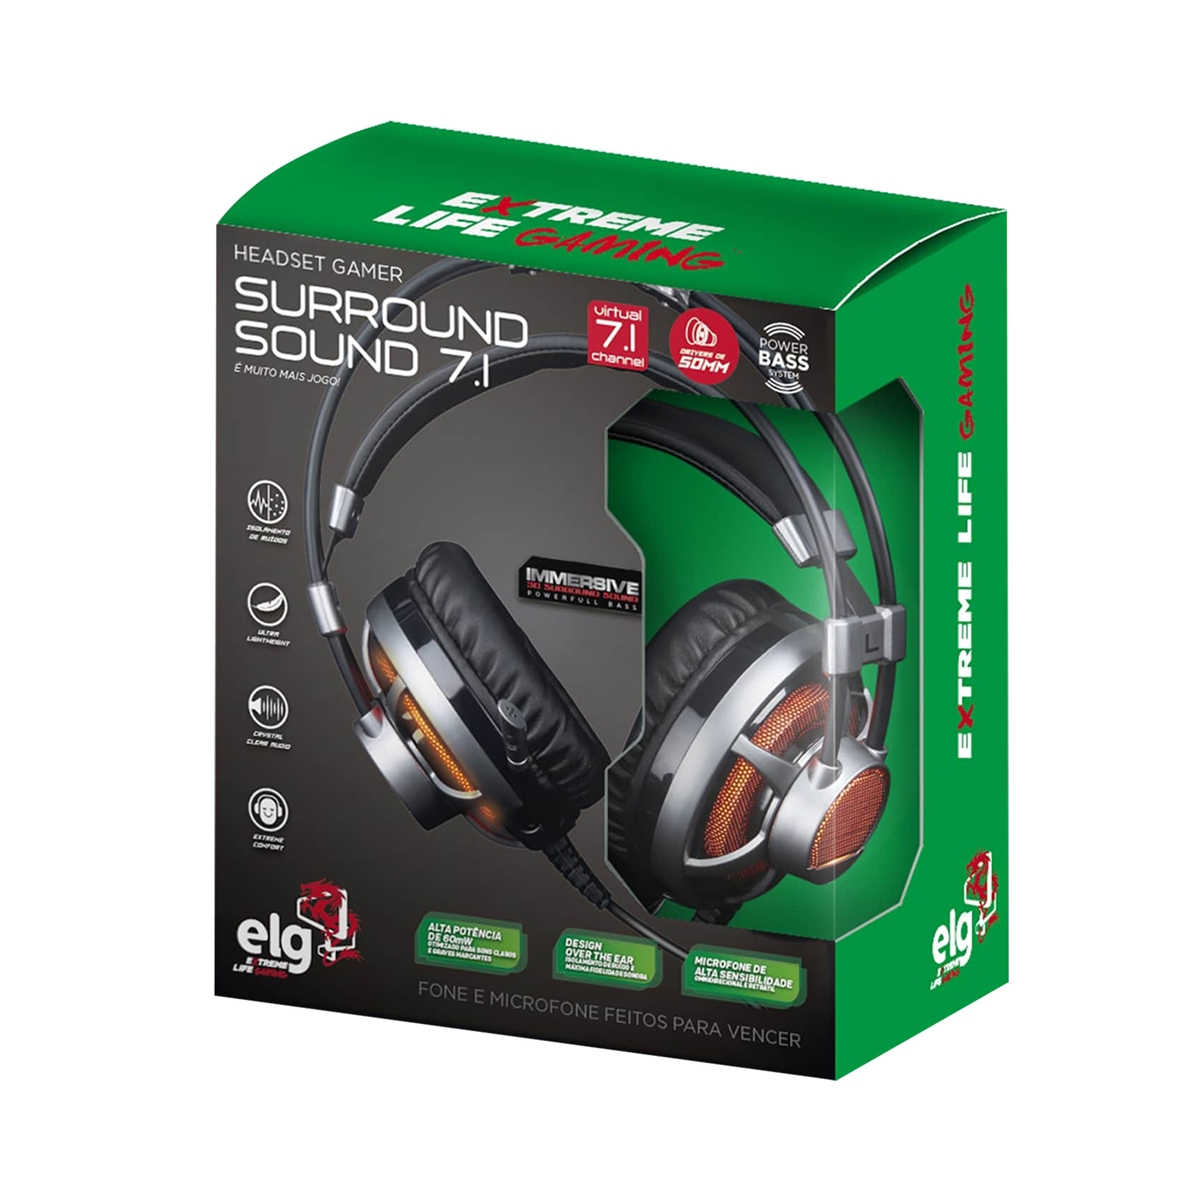 Headset Gamer Extreme 7.1 Surround com Microfone LED Laranja Drivers 50mm Cabo 2,2 Metros para PC PS4 ELG HGSS71